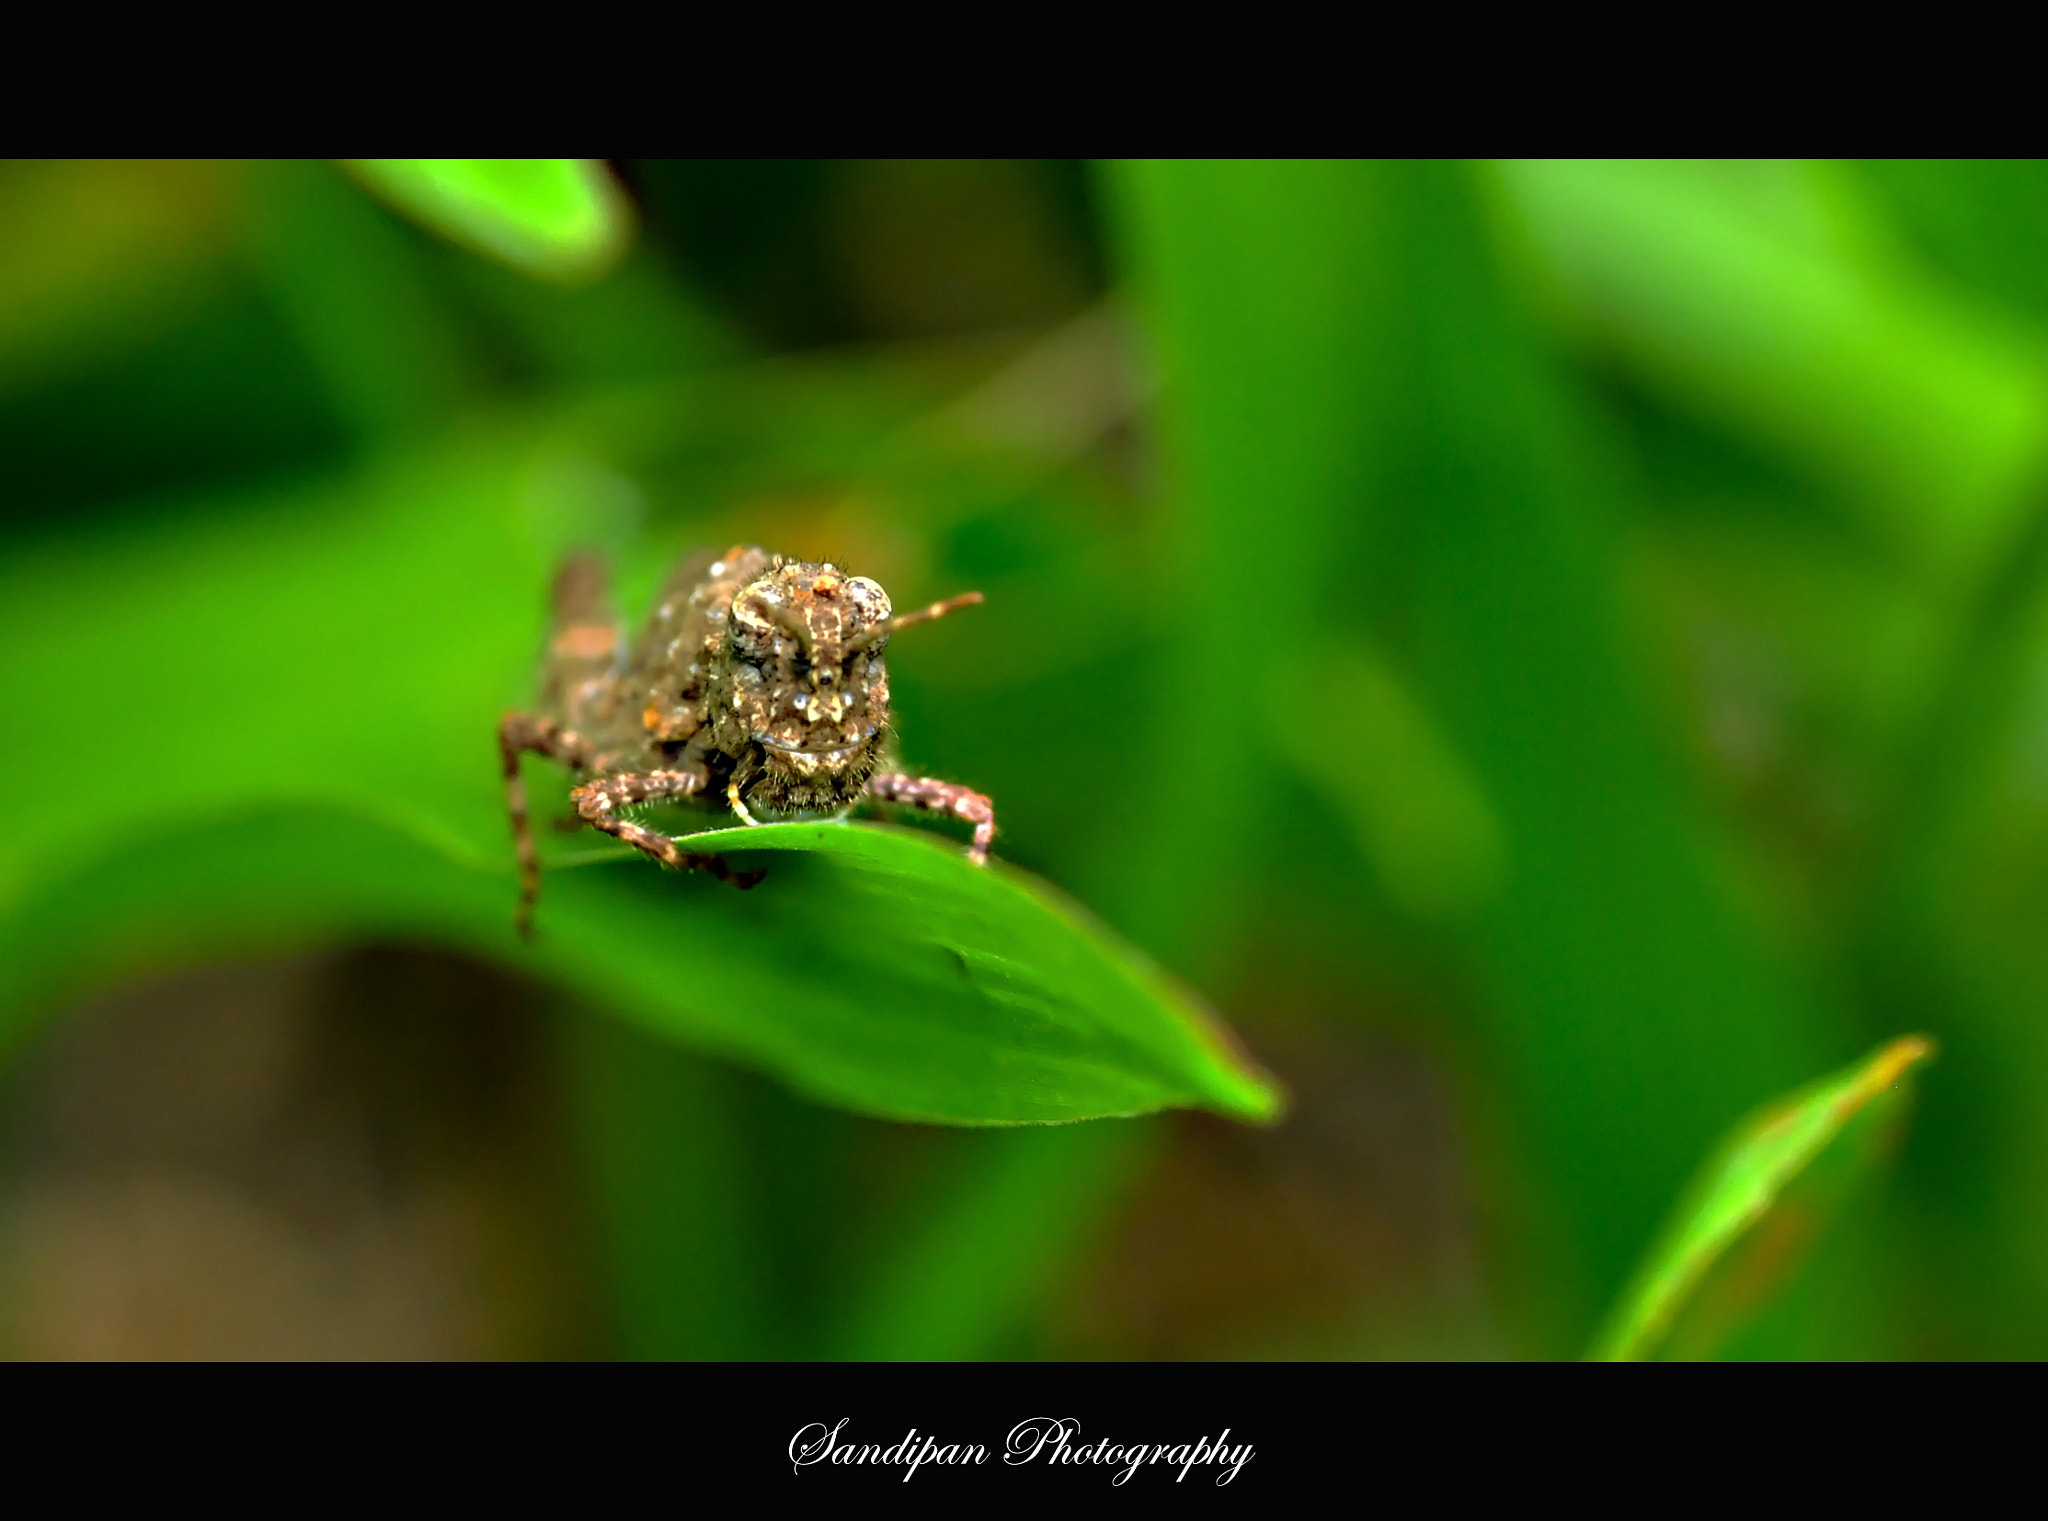 Photograph I am here by Sandipan Bhattacharya on 500px